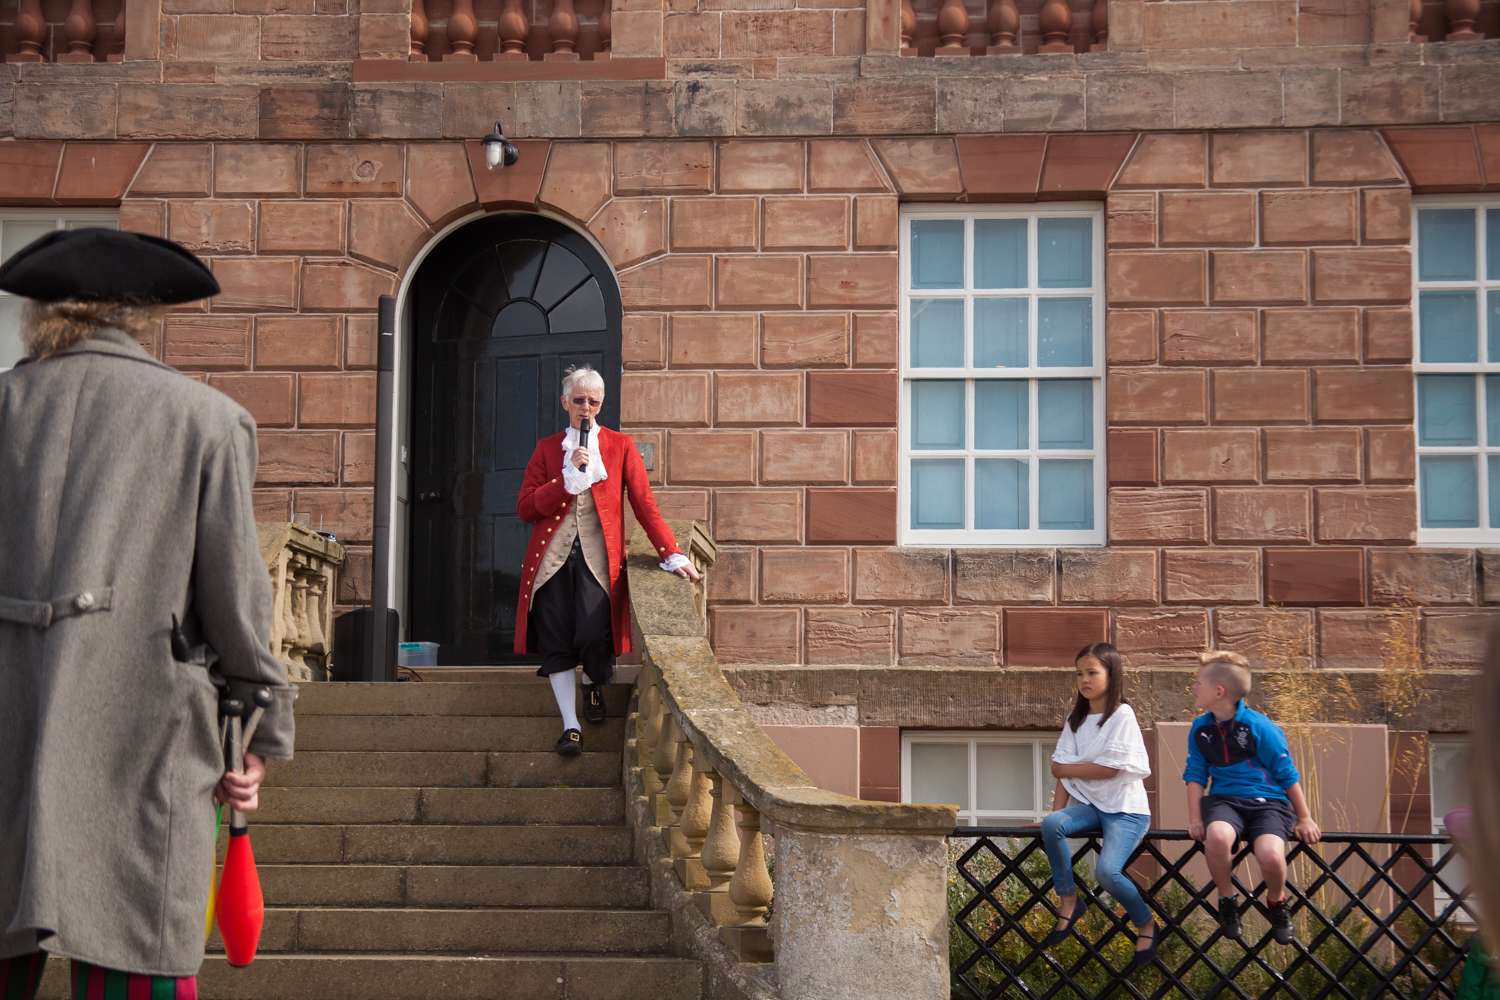 PICTORIAL_BERWICK_eyemouth-gunsgreen-extravaganza-photography-entertainment-party-event-photographer-harbour-gary-dunn-dancers-stilts-performances-speeches-day-out-summer-4531.jpg